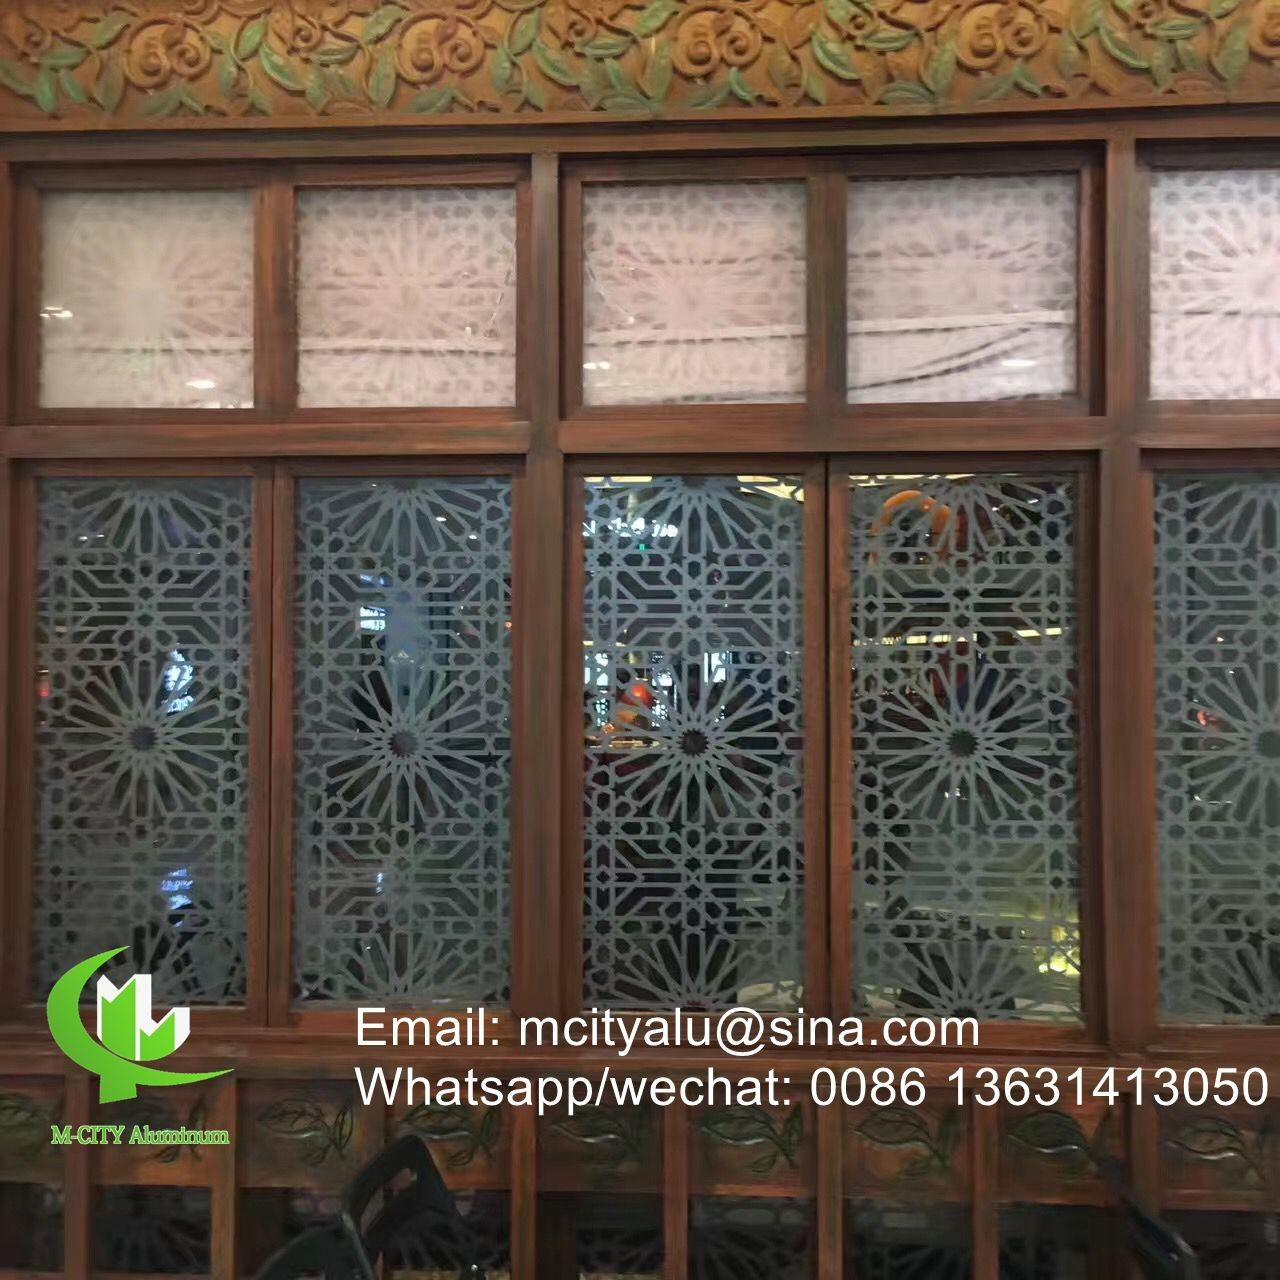 Quality Aluminum perforated sheet for window screen room divider fence with 2mm thickness laser cut screen for sale